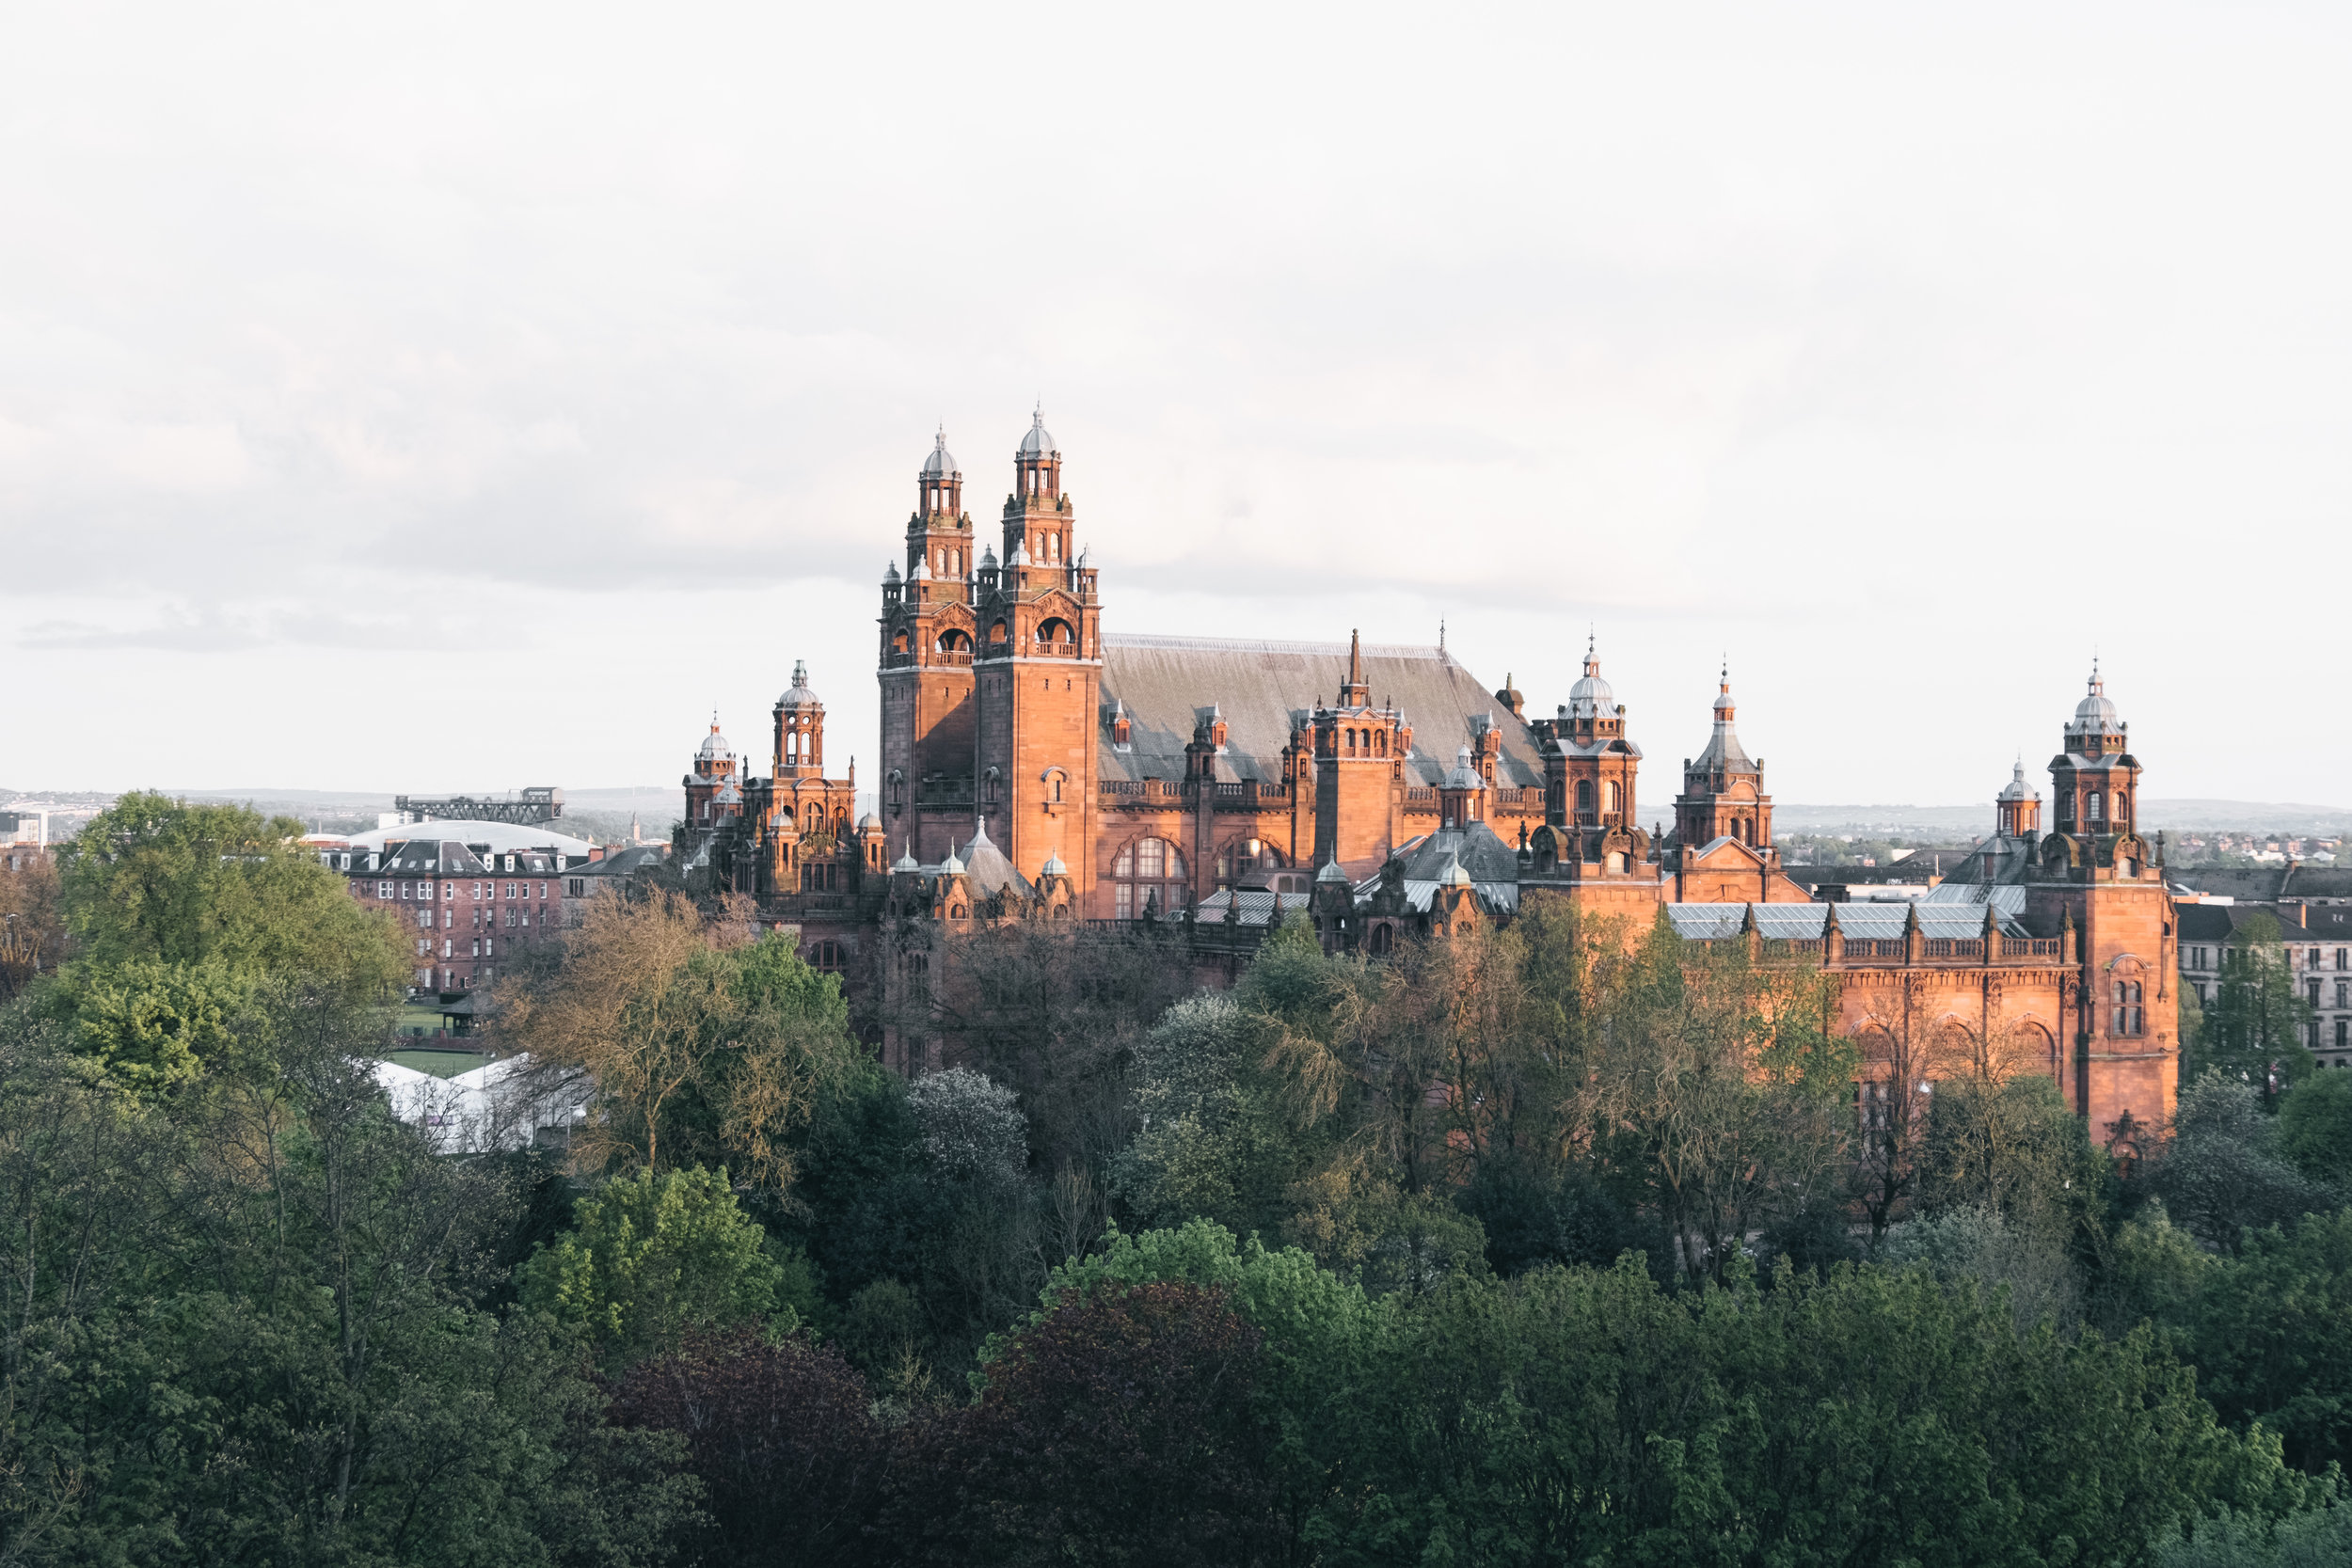 The view of Kelvingrove Art Gallery from University of Glasgow. Marked [6] on the guide